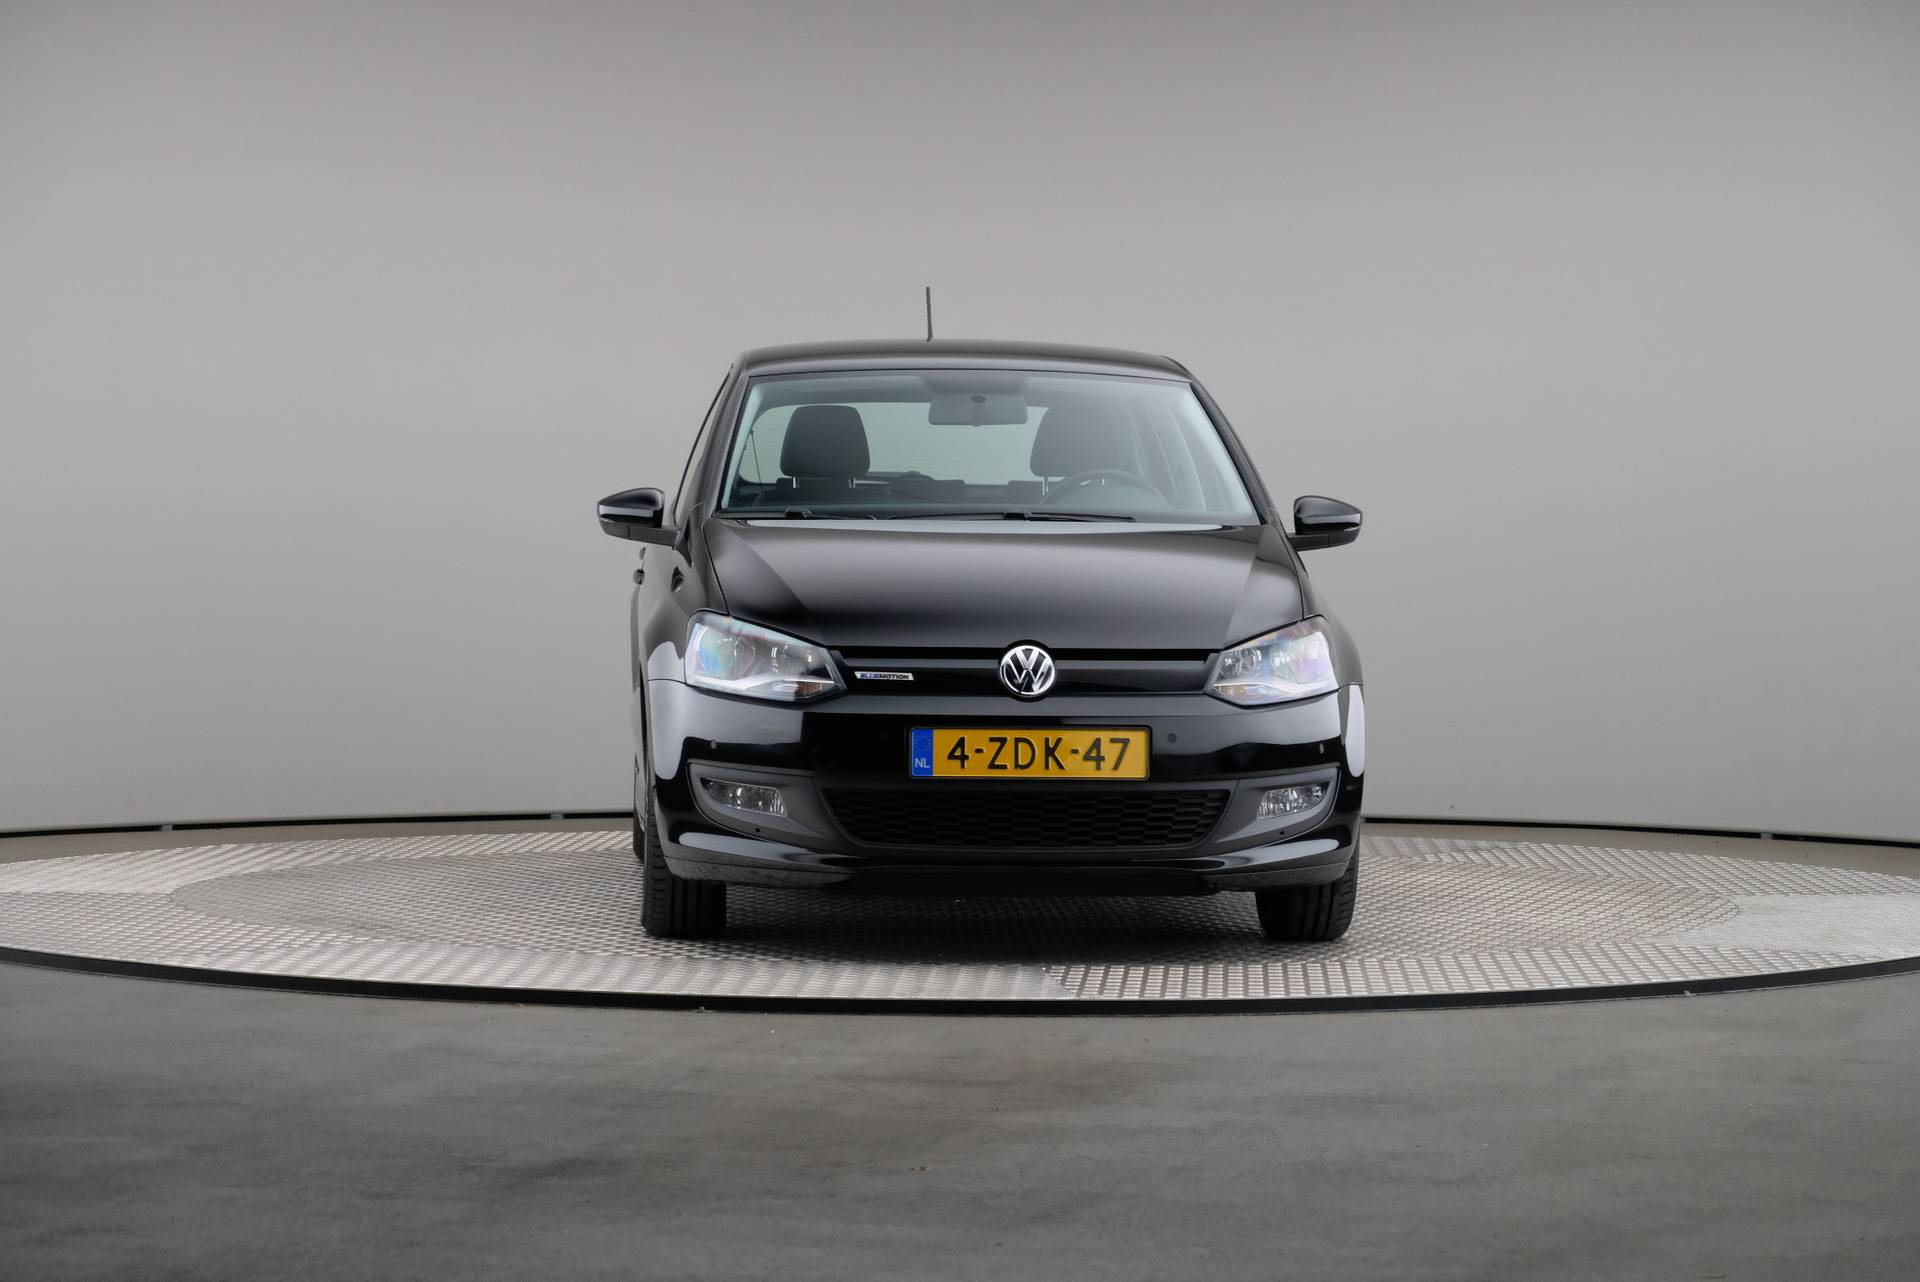 Volkswagen Polo 1.4 TDI BlueMotion Executive plus, Navigatie, 360-image32